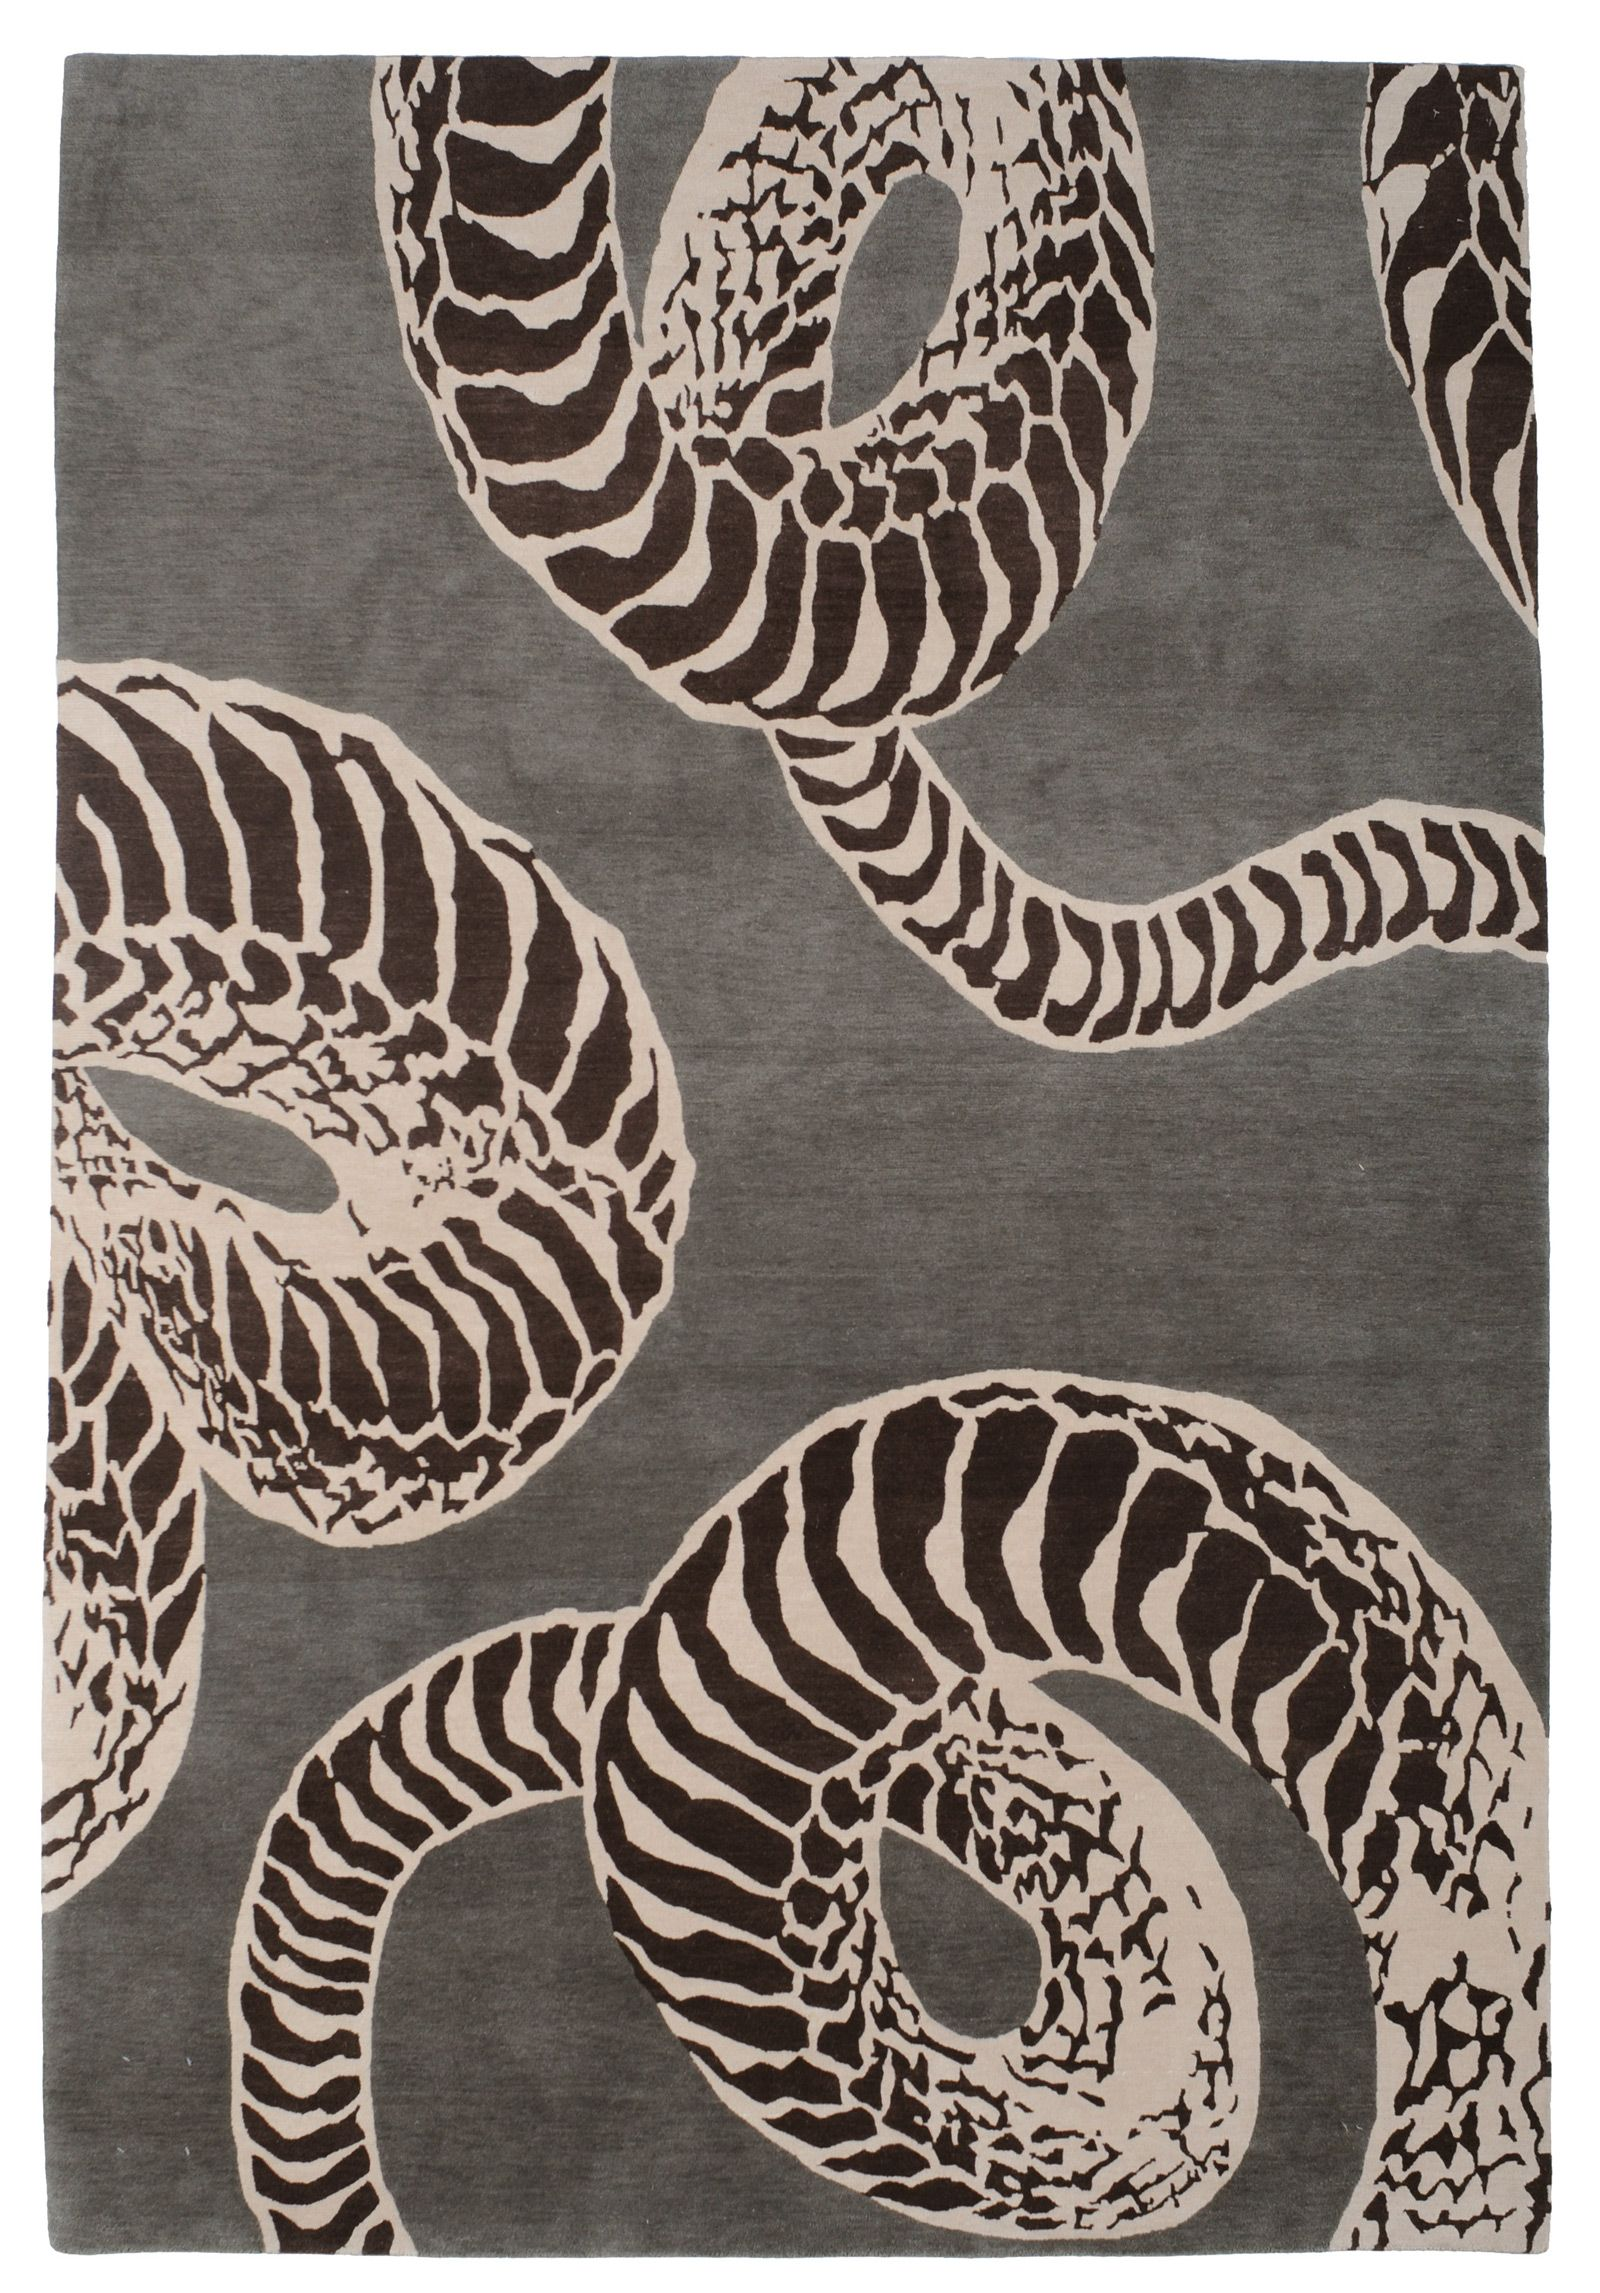 Serpent by Kelly Wearstler for The Rug Company | Floored ...